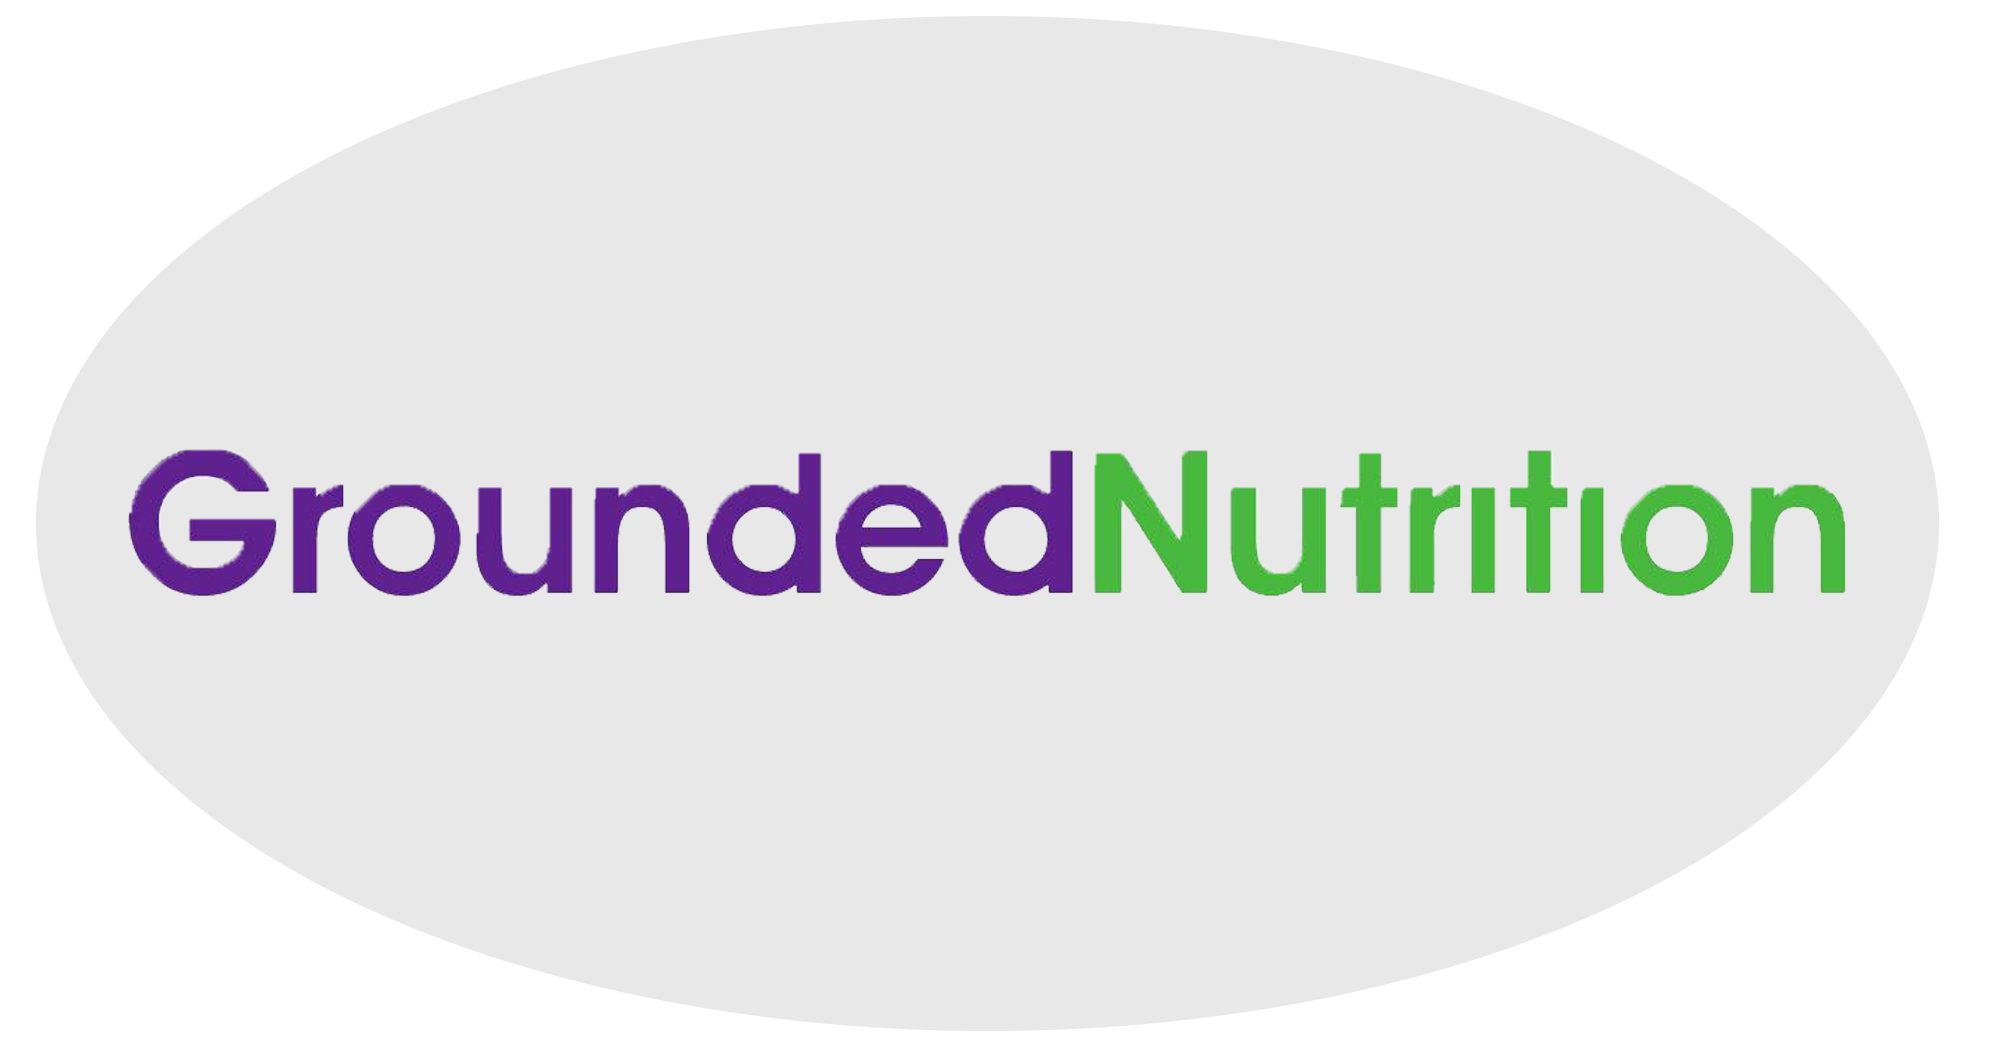 Grounded Nutrition